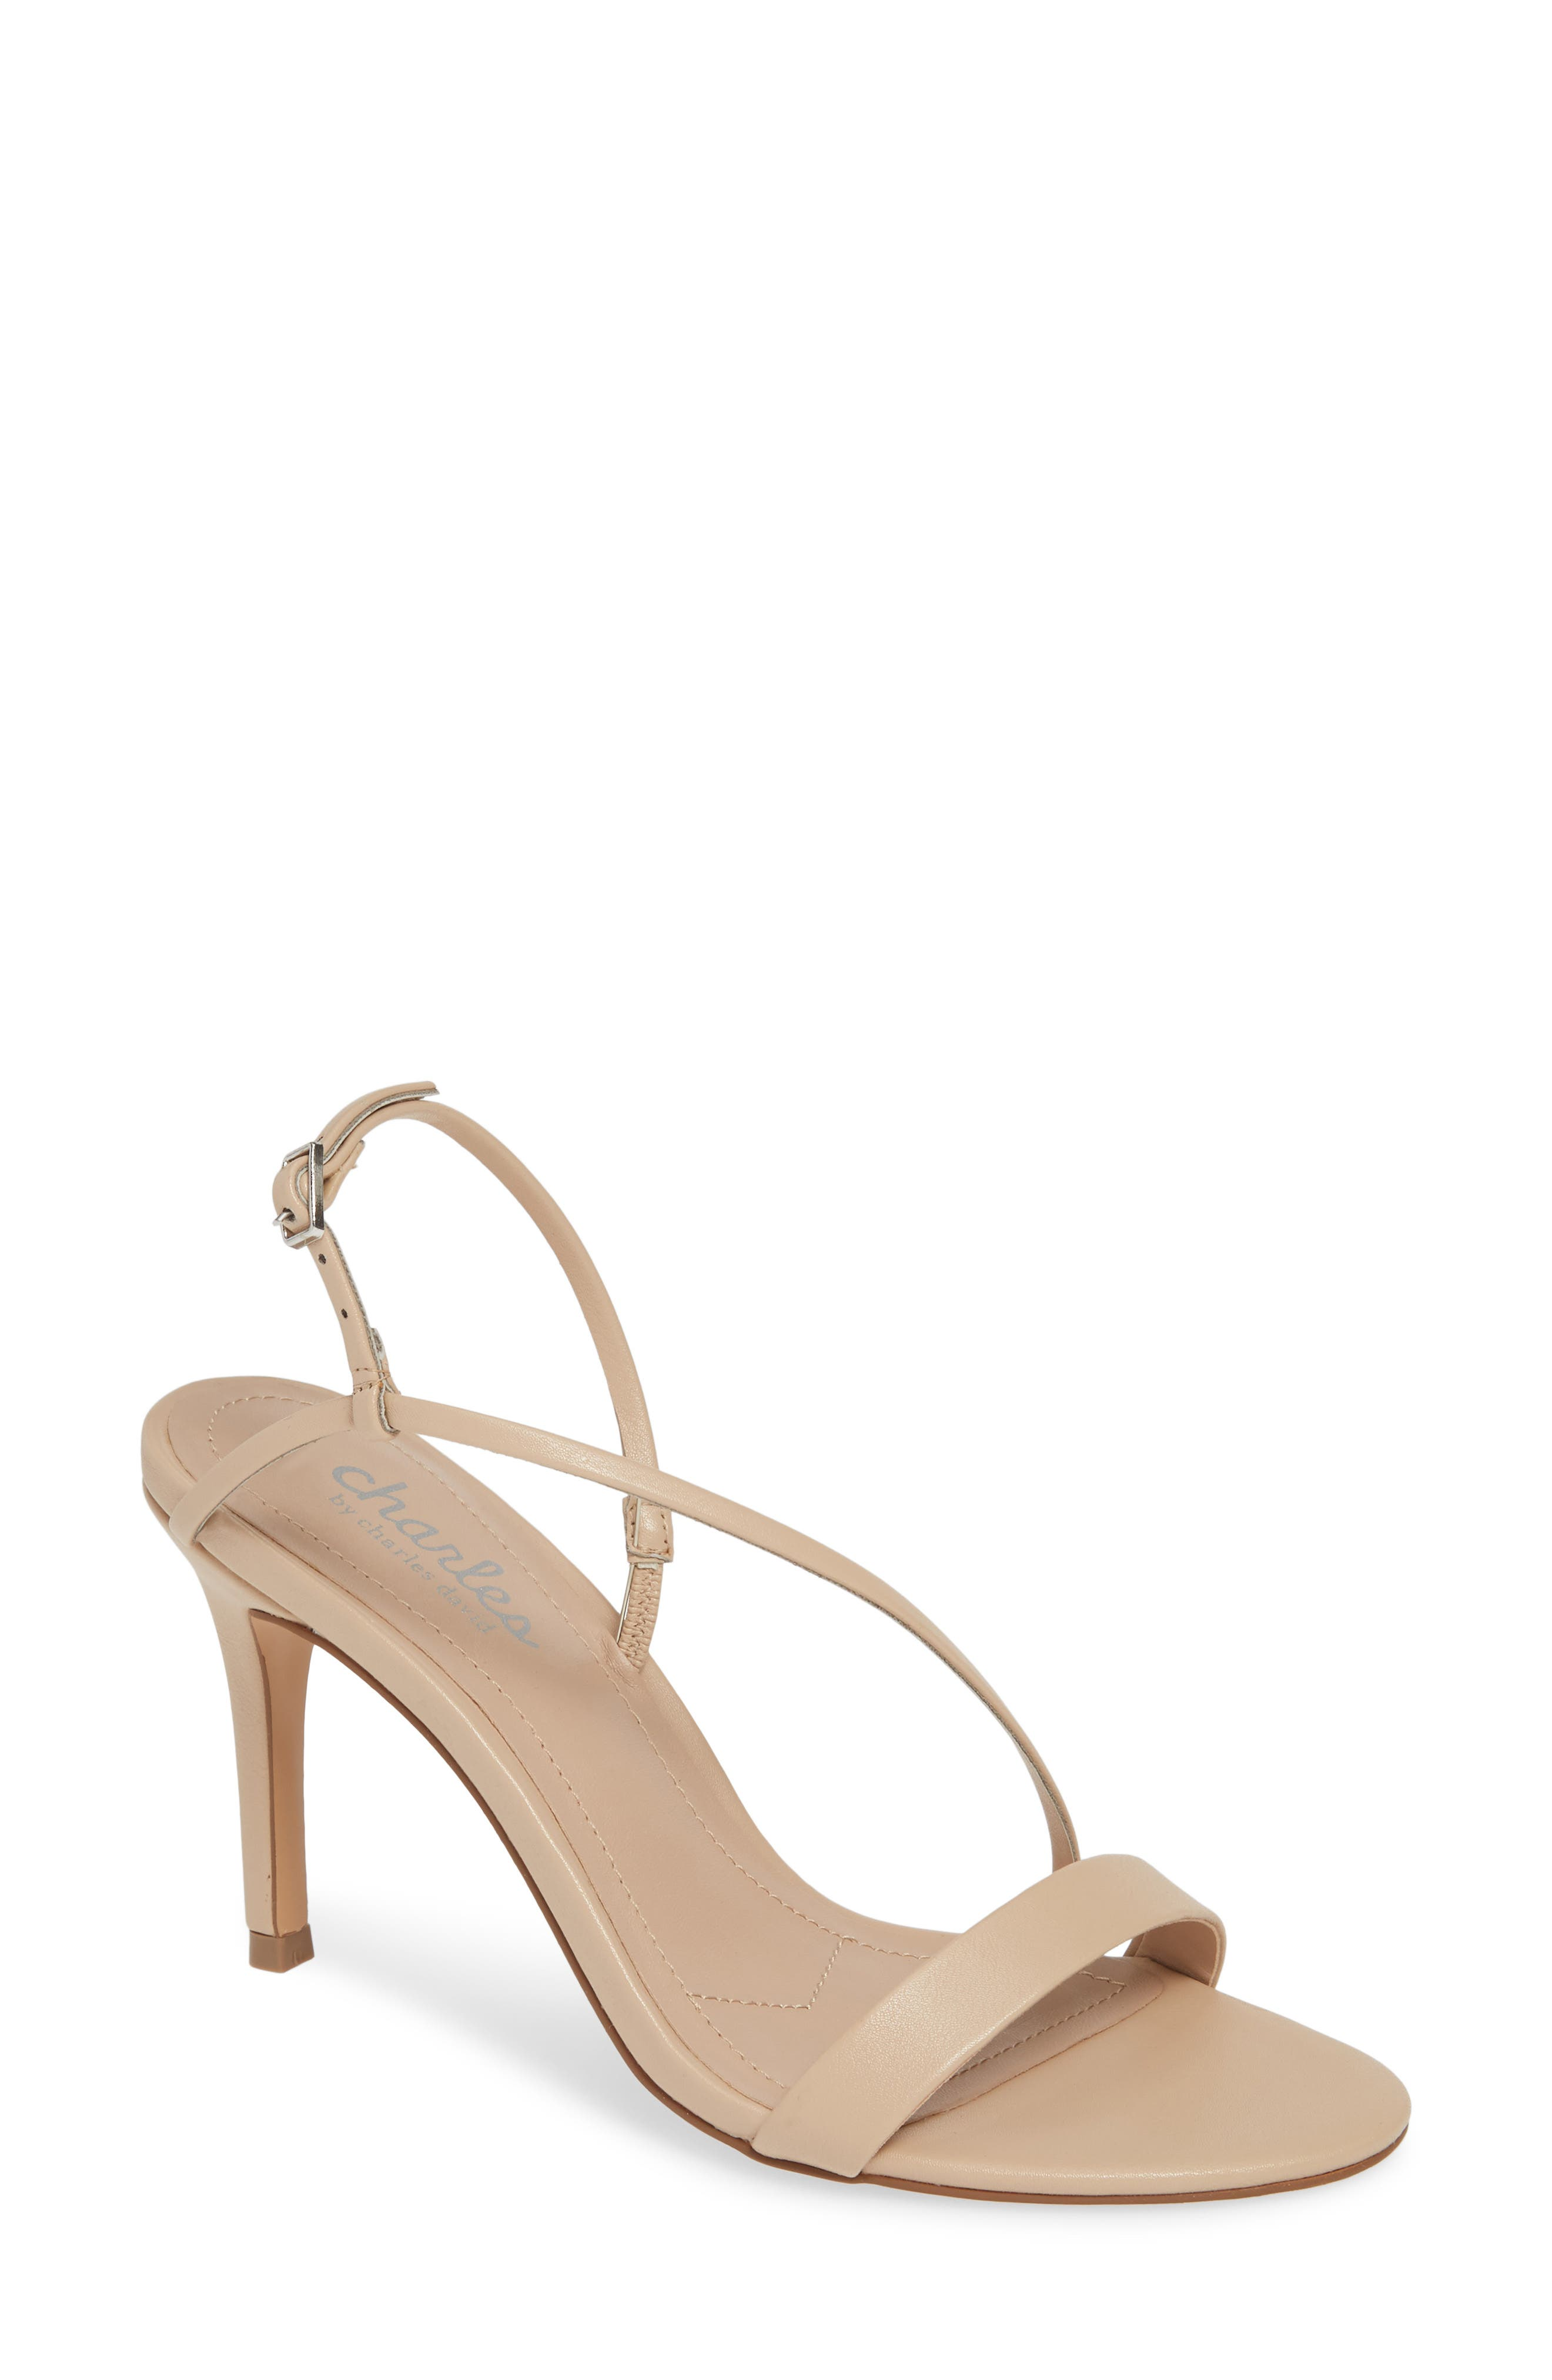 Charles By Charles David Hardy Strappy Slingback Sandal, Beige